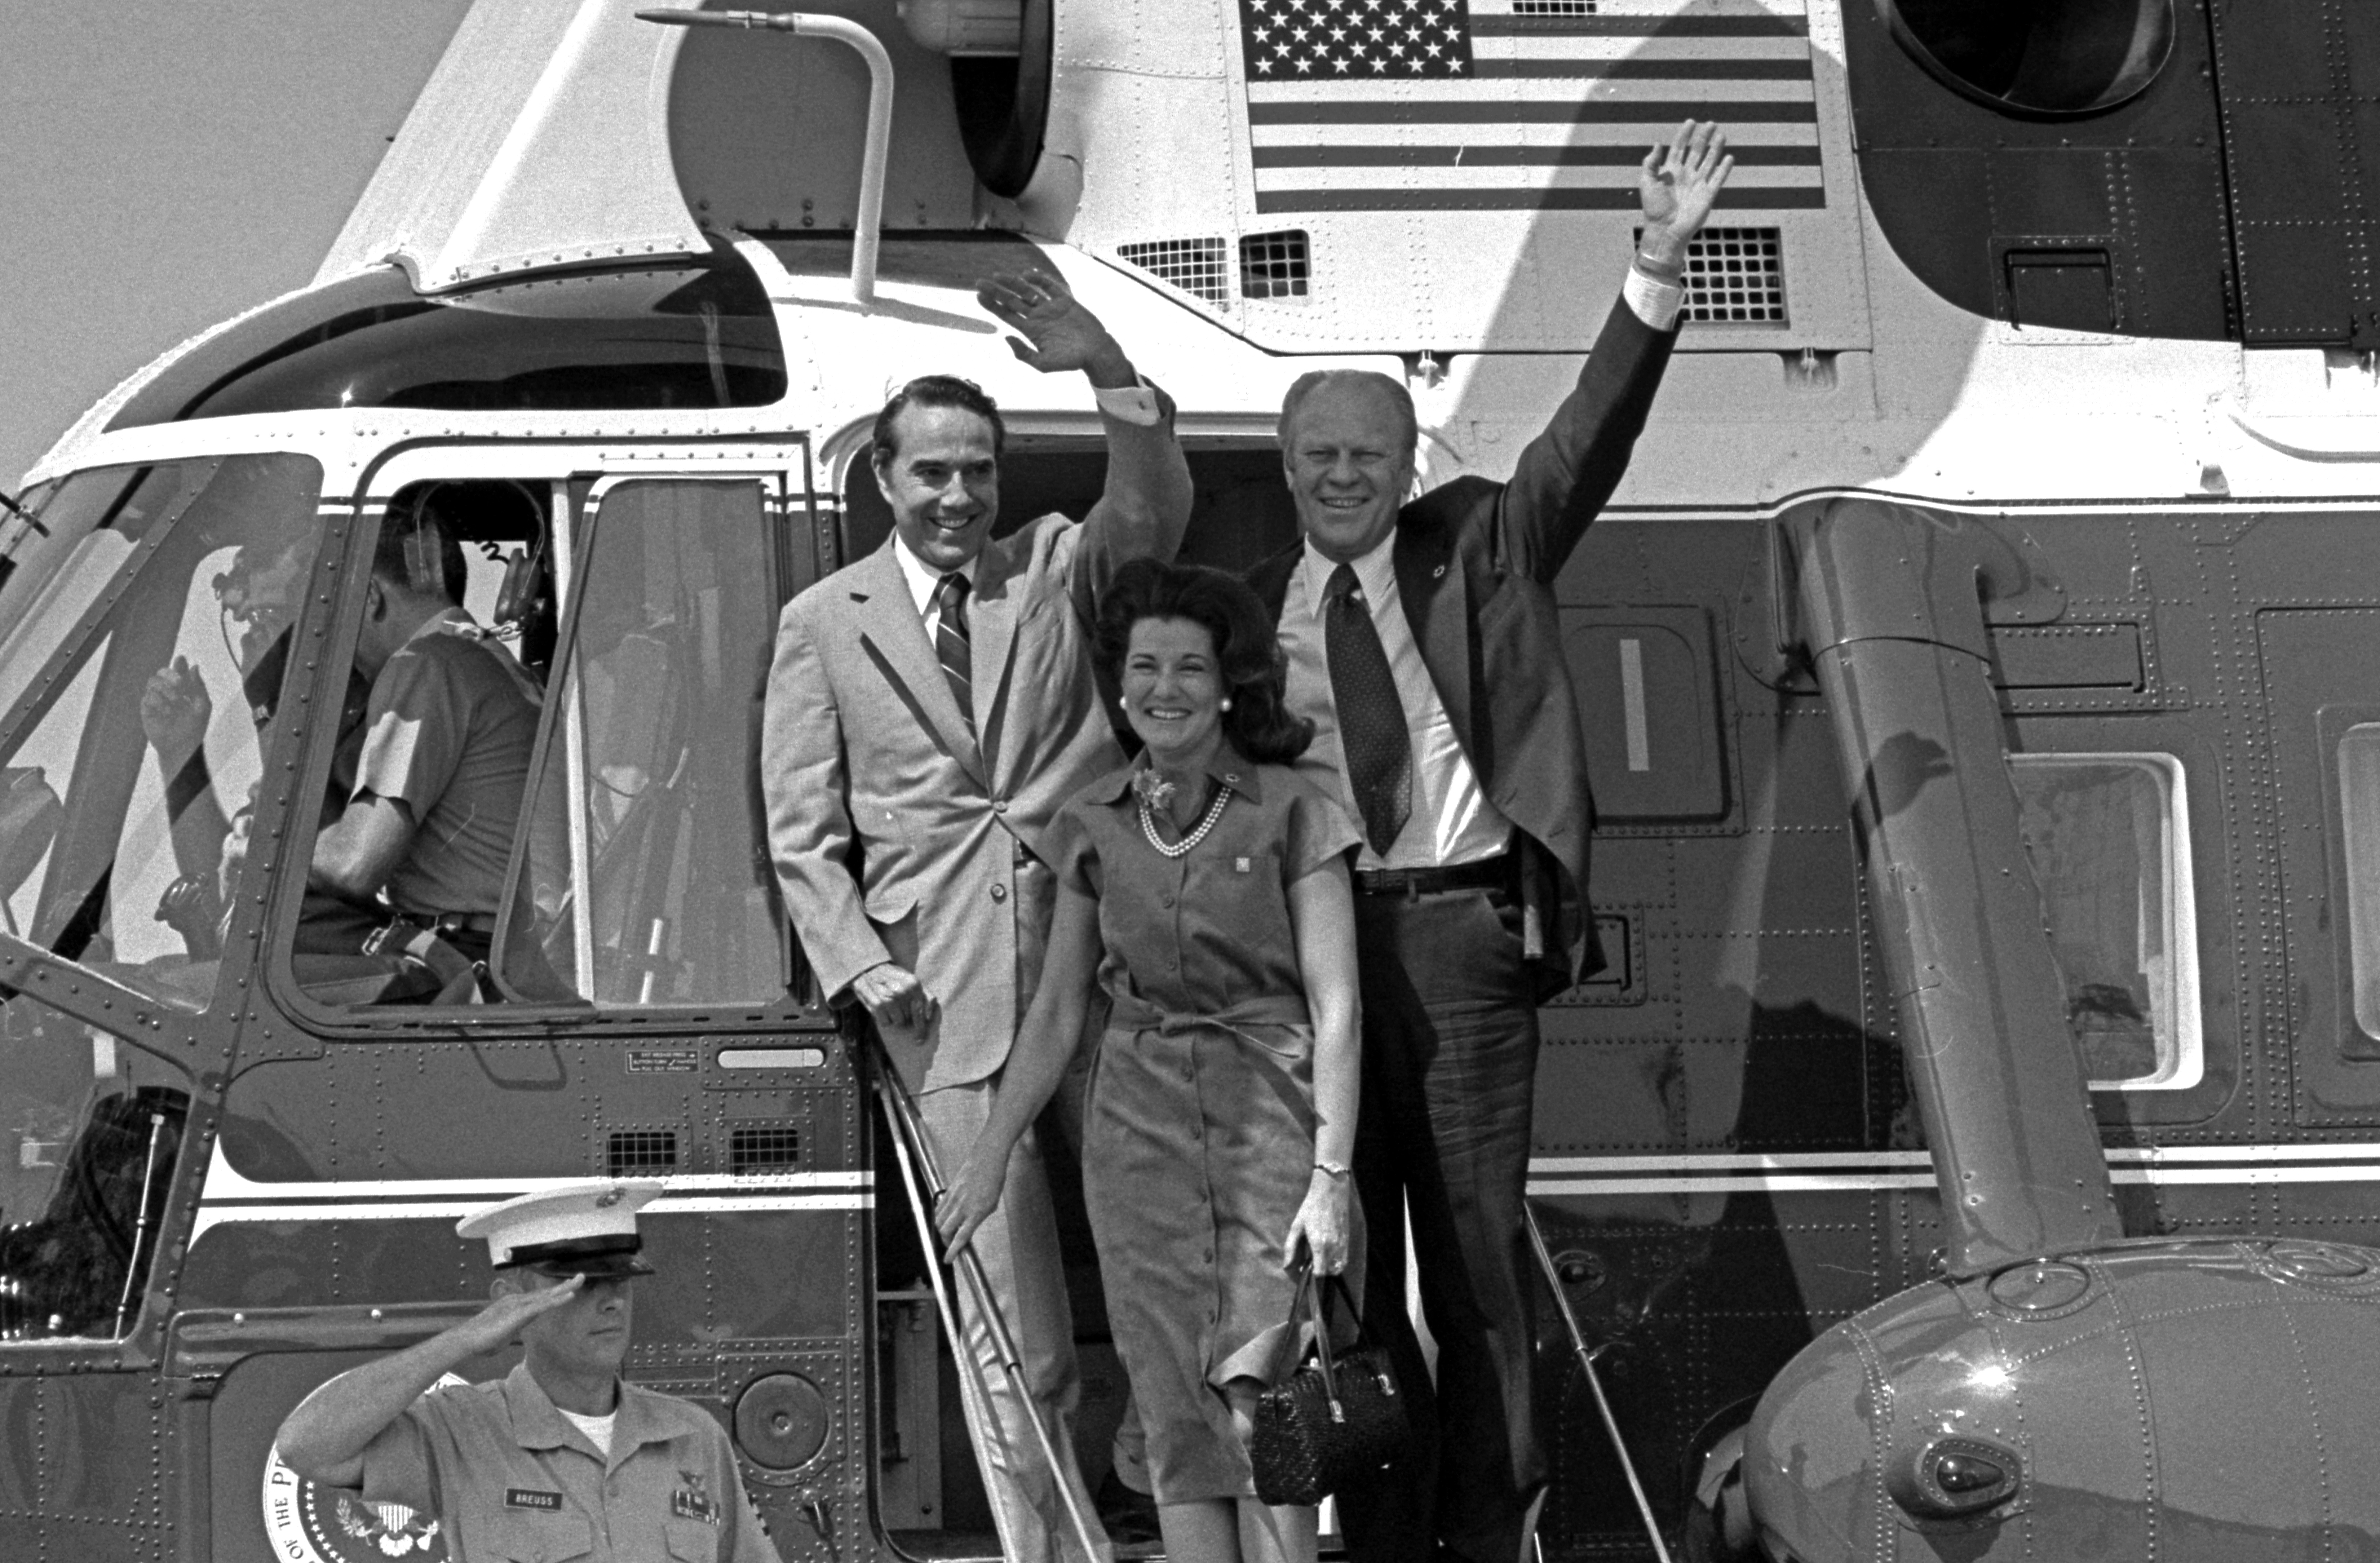 nixon helicopter photo with File President Ford  Senator Robert Dole And Mrs  Elizabeth Dole   Nara   7027917 on GJQAnDS0sV blog additionally Stunning Pictures From Vietnam War additionally Mississippi River Flood Thousands Forced Evacuate Homes besides Photos Of Missouri Floods December 2015 January 2016 likewise Far Cry 5 Side Missions Guide.